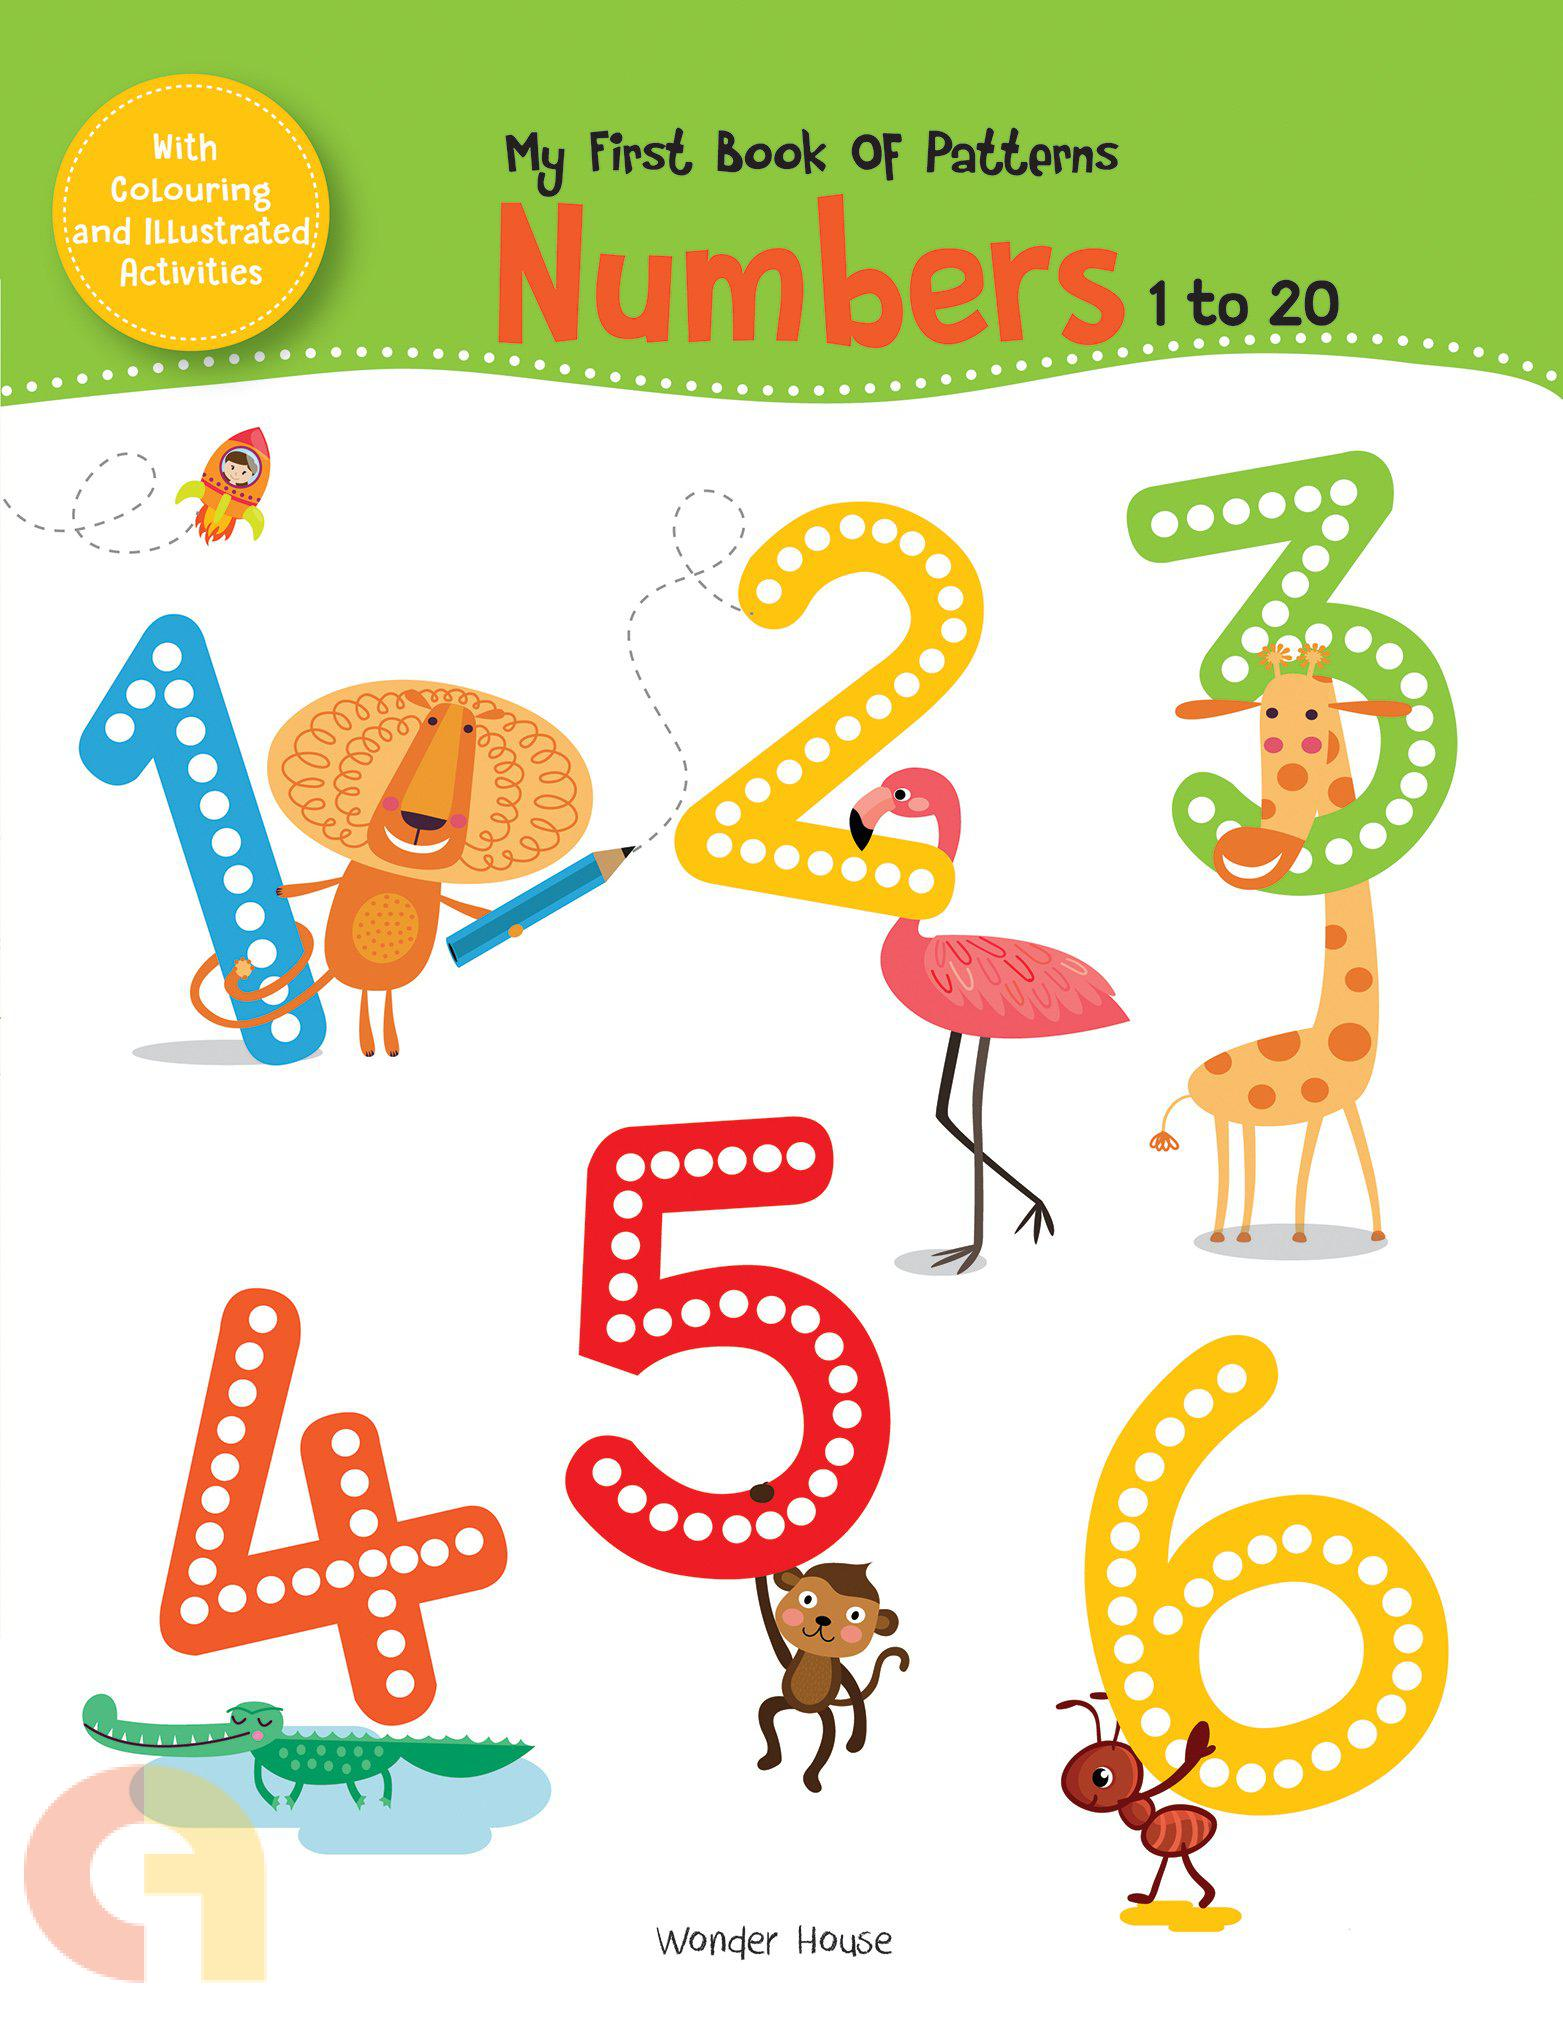 My First Book of Patterns: Numbers 1 to 20